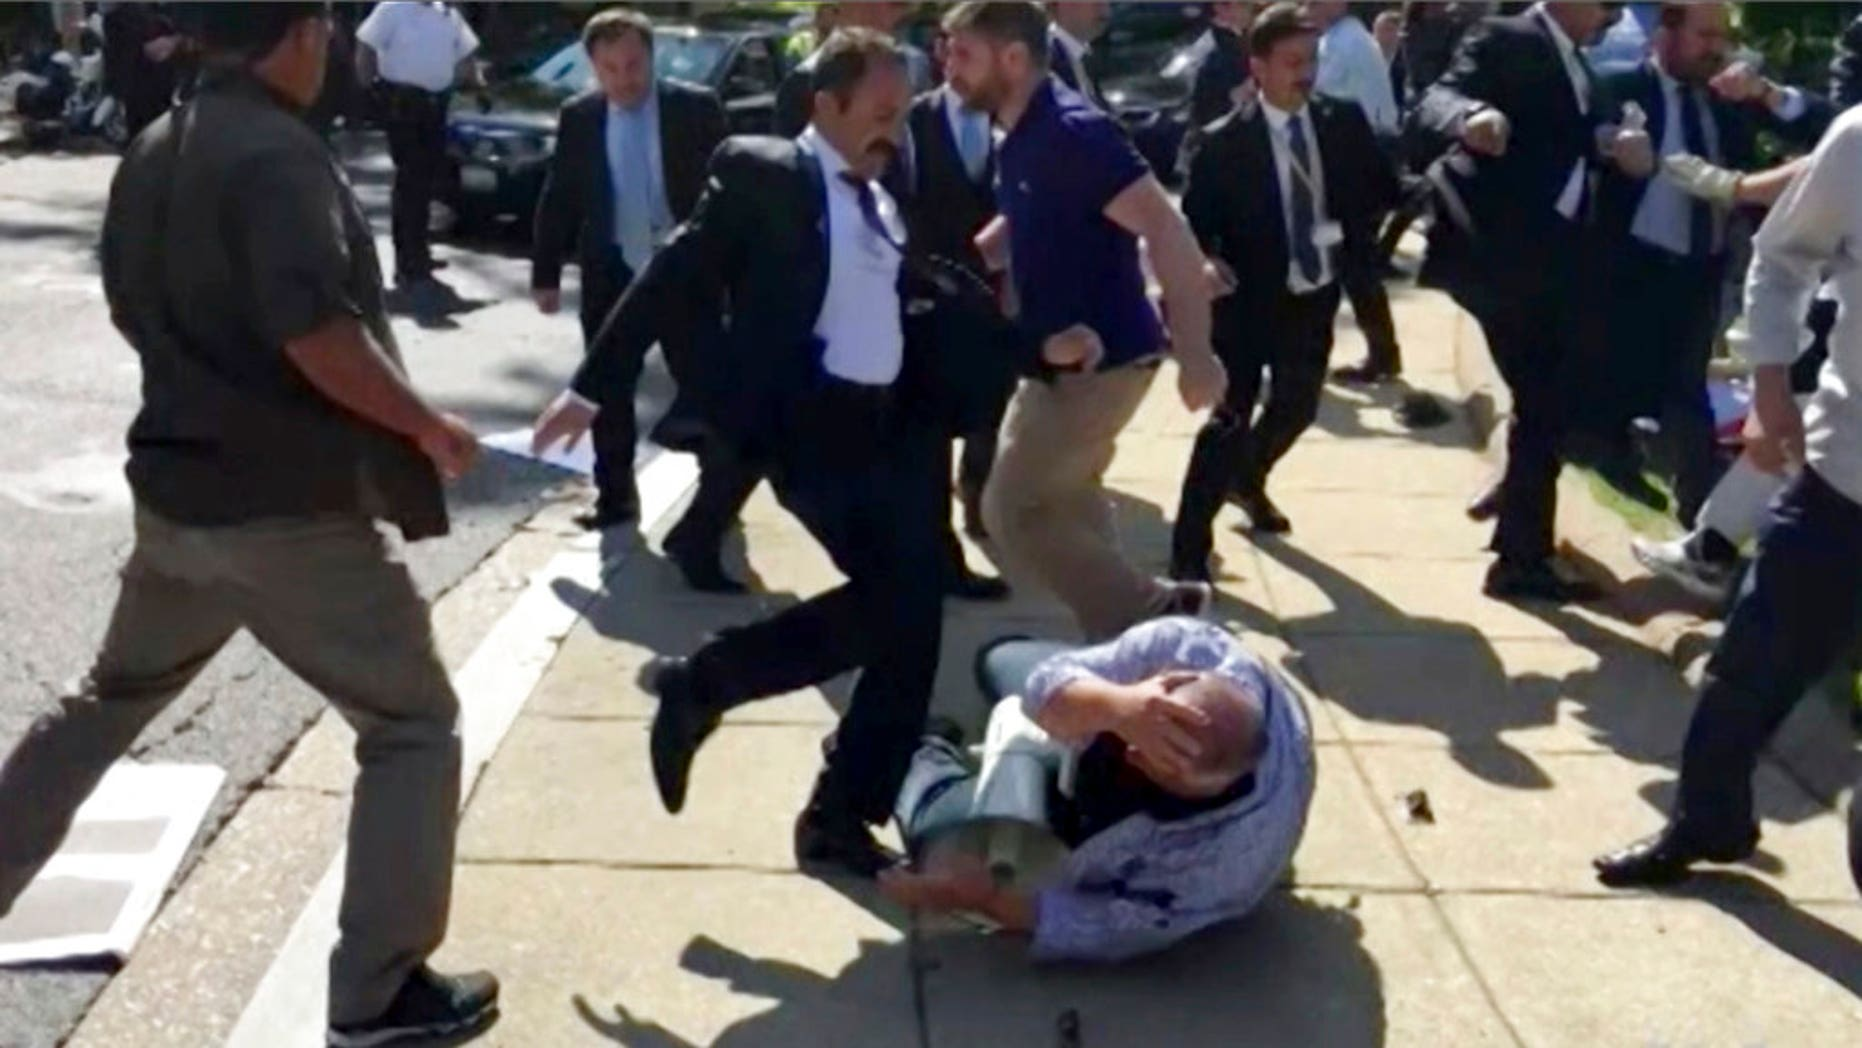 Members of Turkish President Recep Tayyip Erdogan's security detail are shown attacking peaceful protesters during Erdogan's trip to Washington in May.